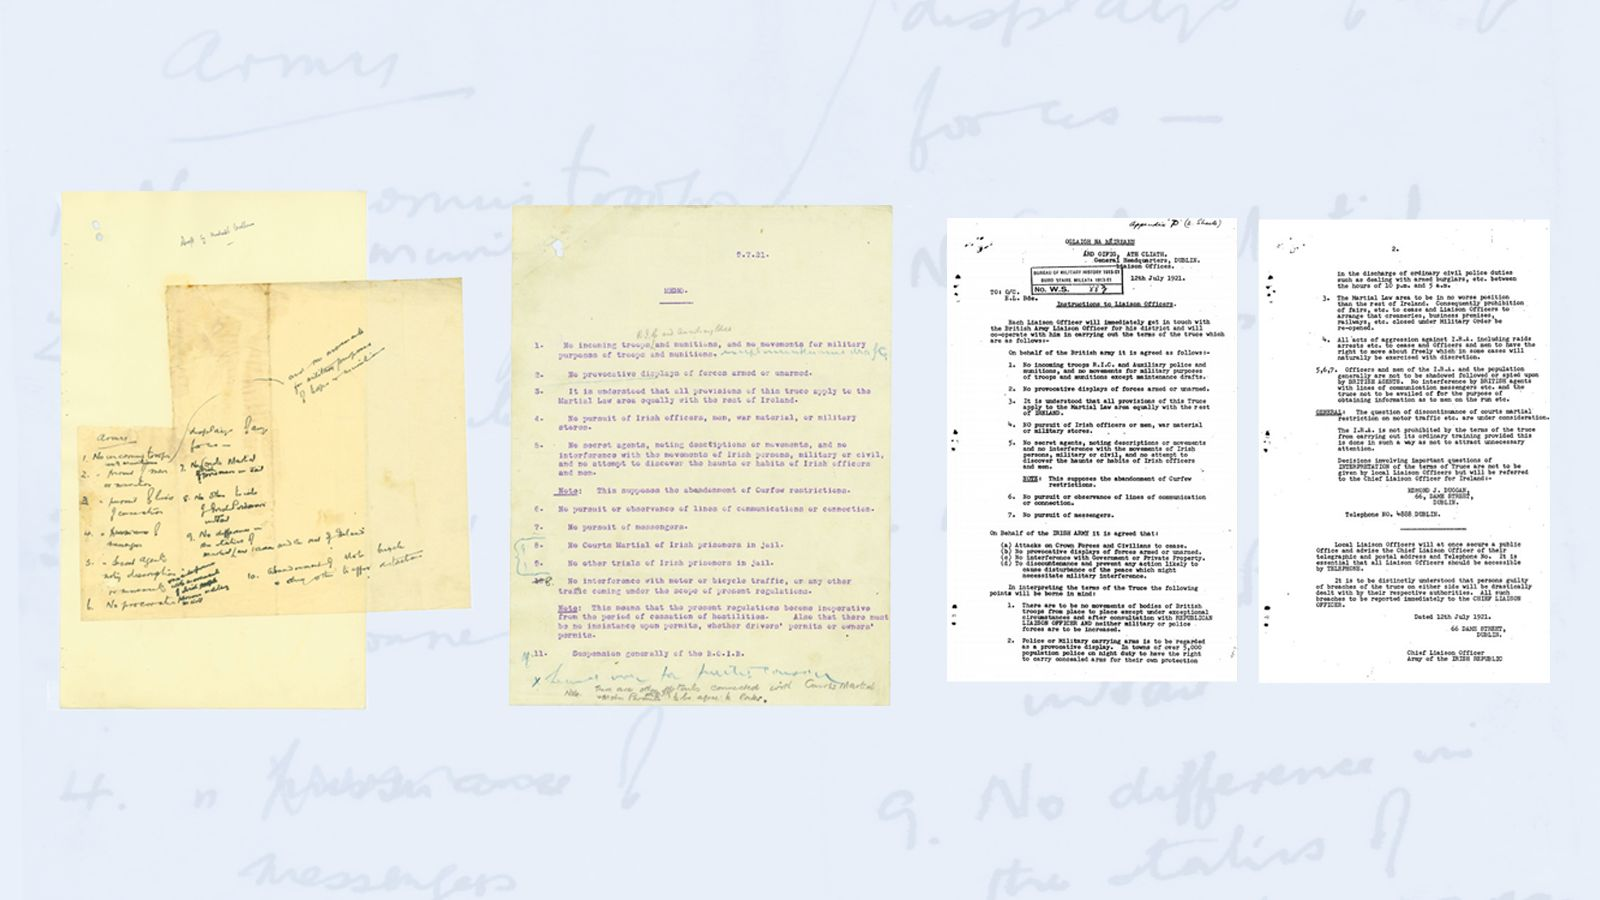 Image - THE FIRST DRAFT OF FREEDOM: How the Truce evolved from Michael Collins' handwritten first draft to the final instructions issued to IRA officers across the country (By kind permission of the National Archives / Bureau Collection in Military Archives)